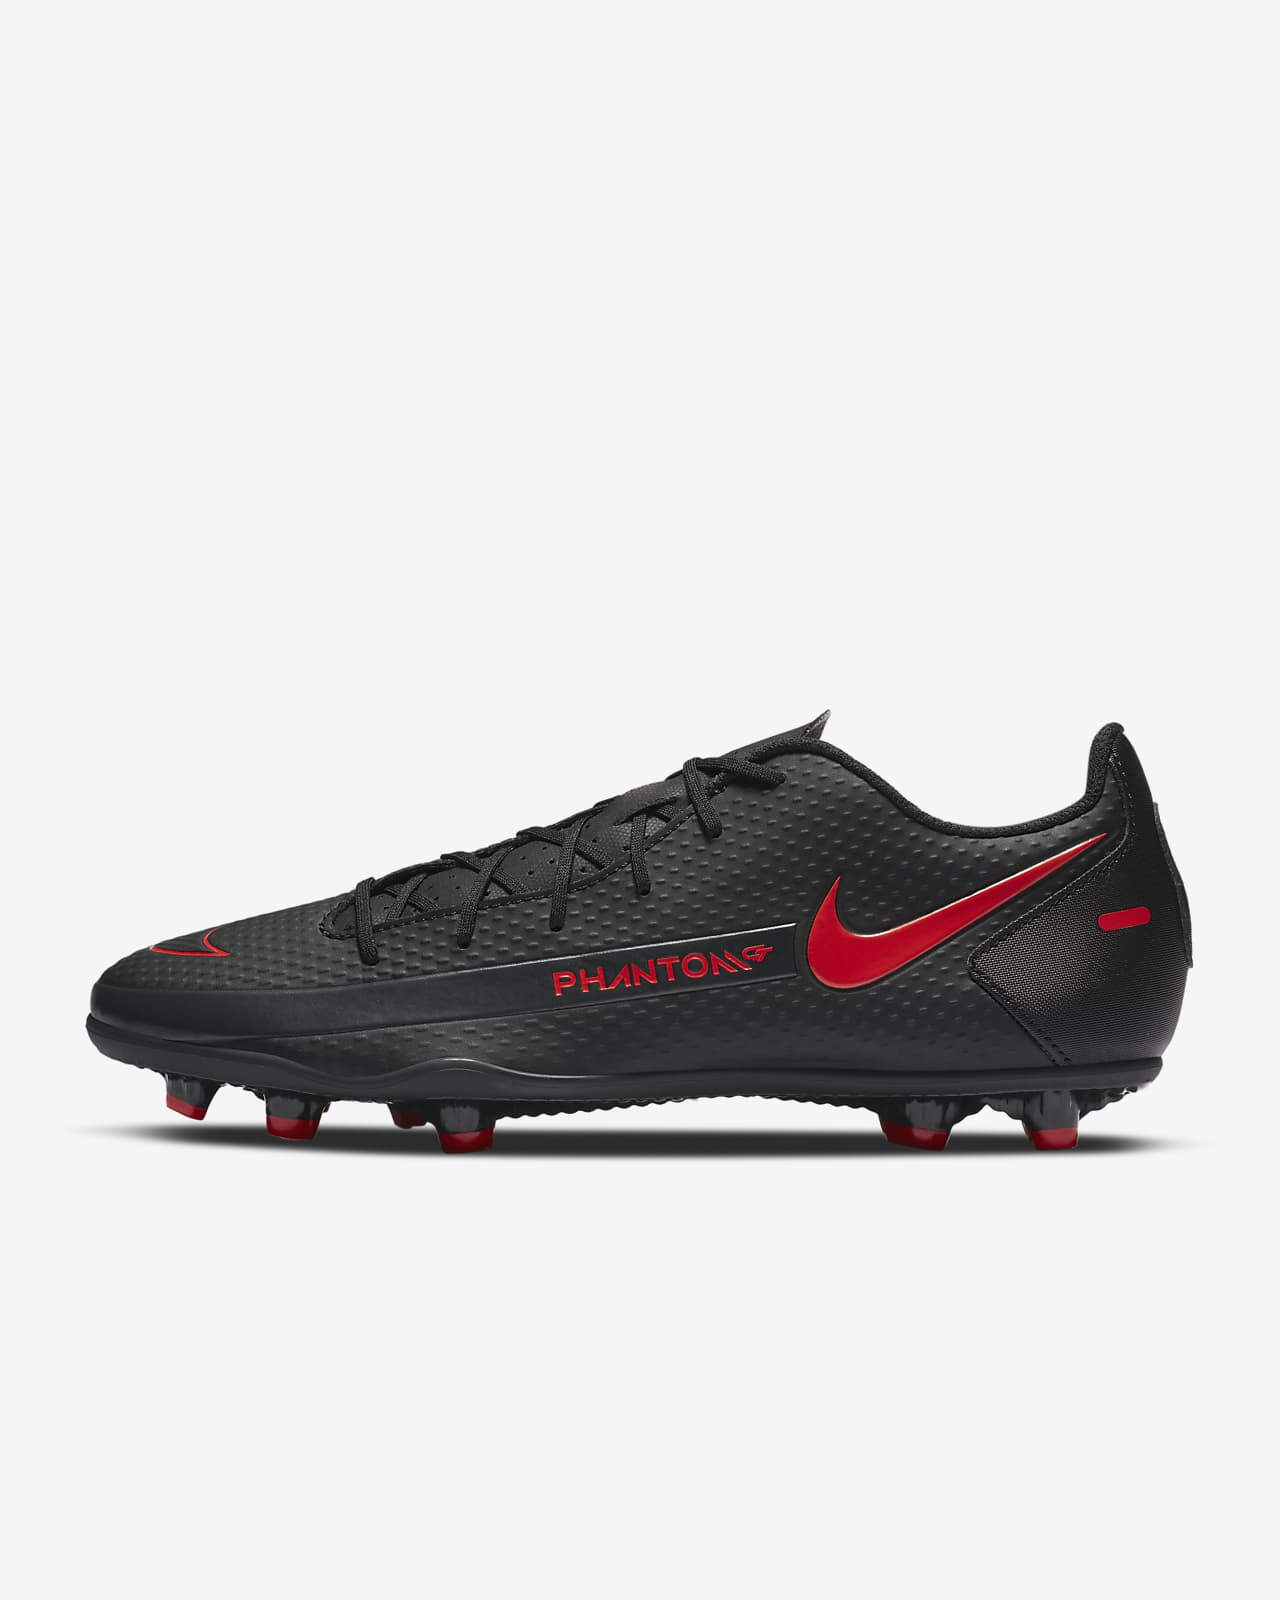 Nike Phantom GT Club MG Multi-Ground Football Boot